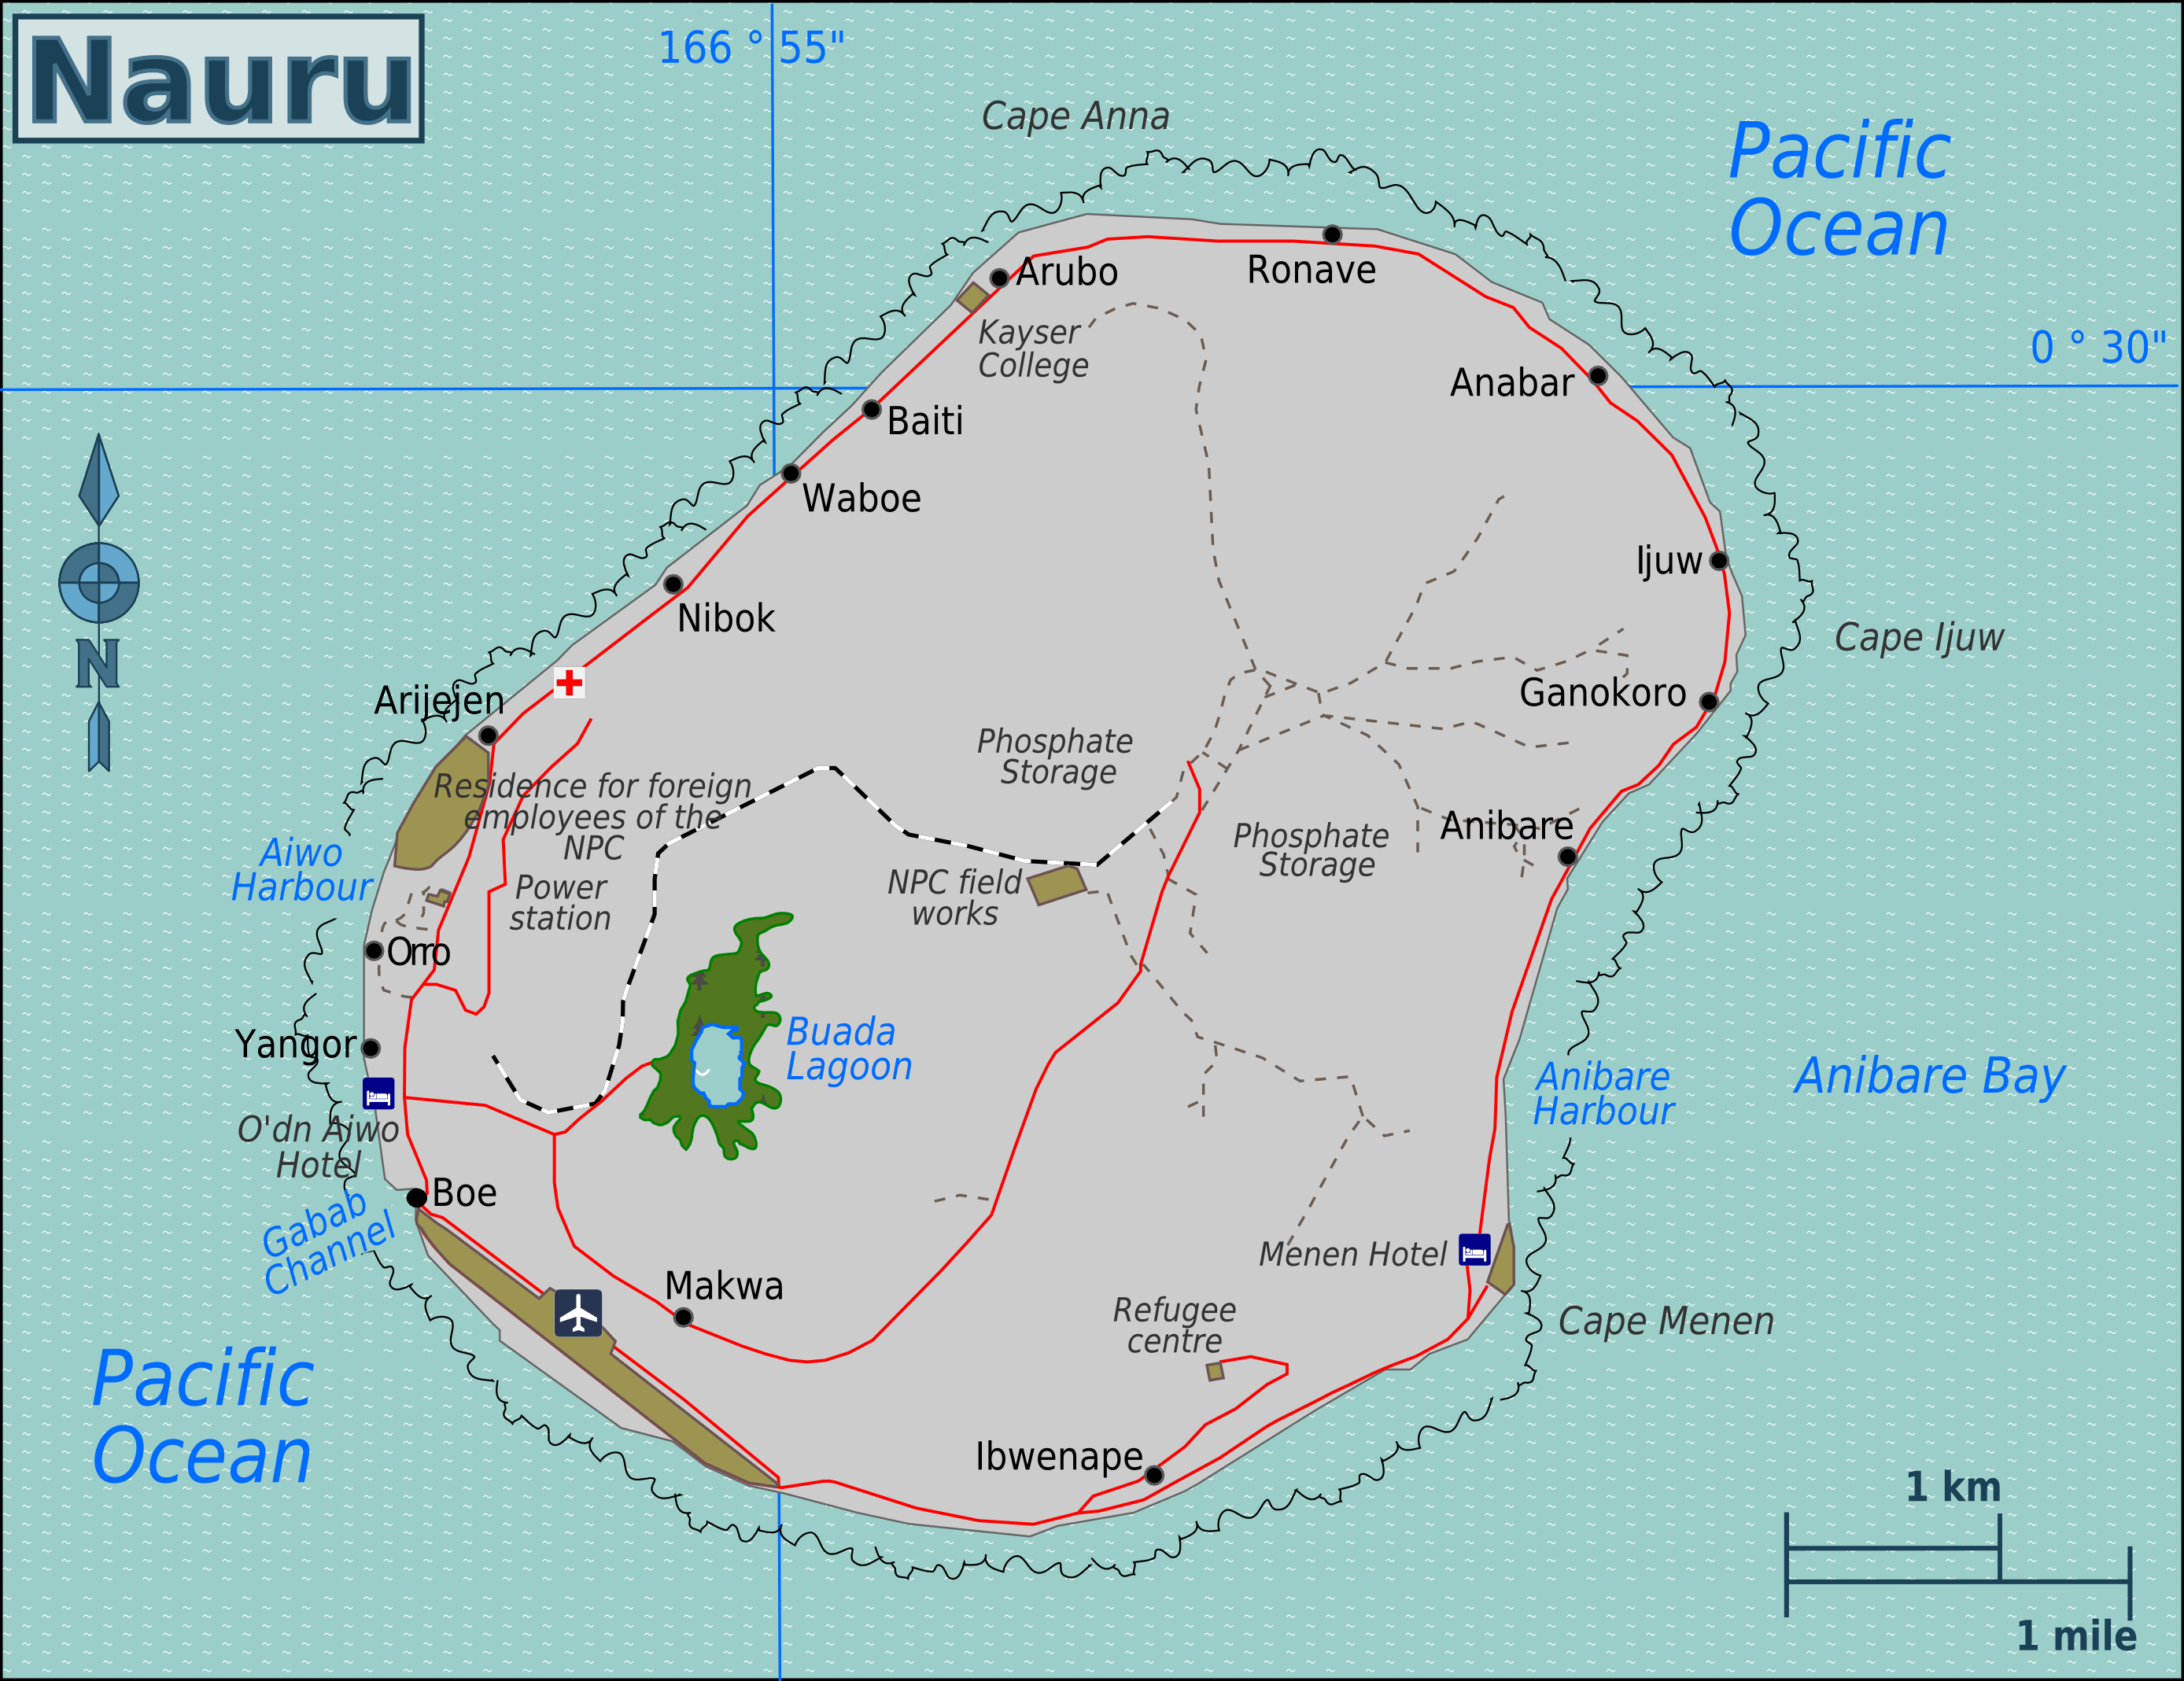 Nauru_map_WV